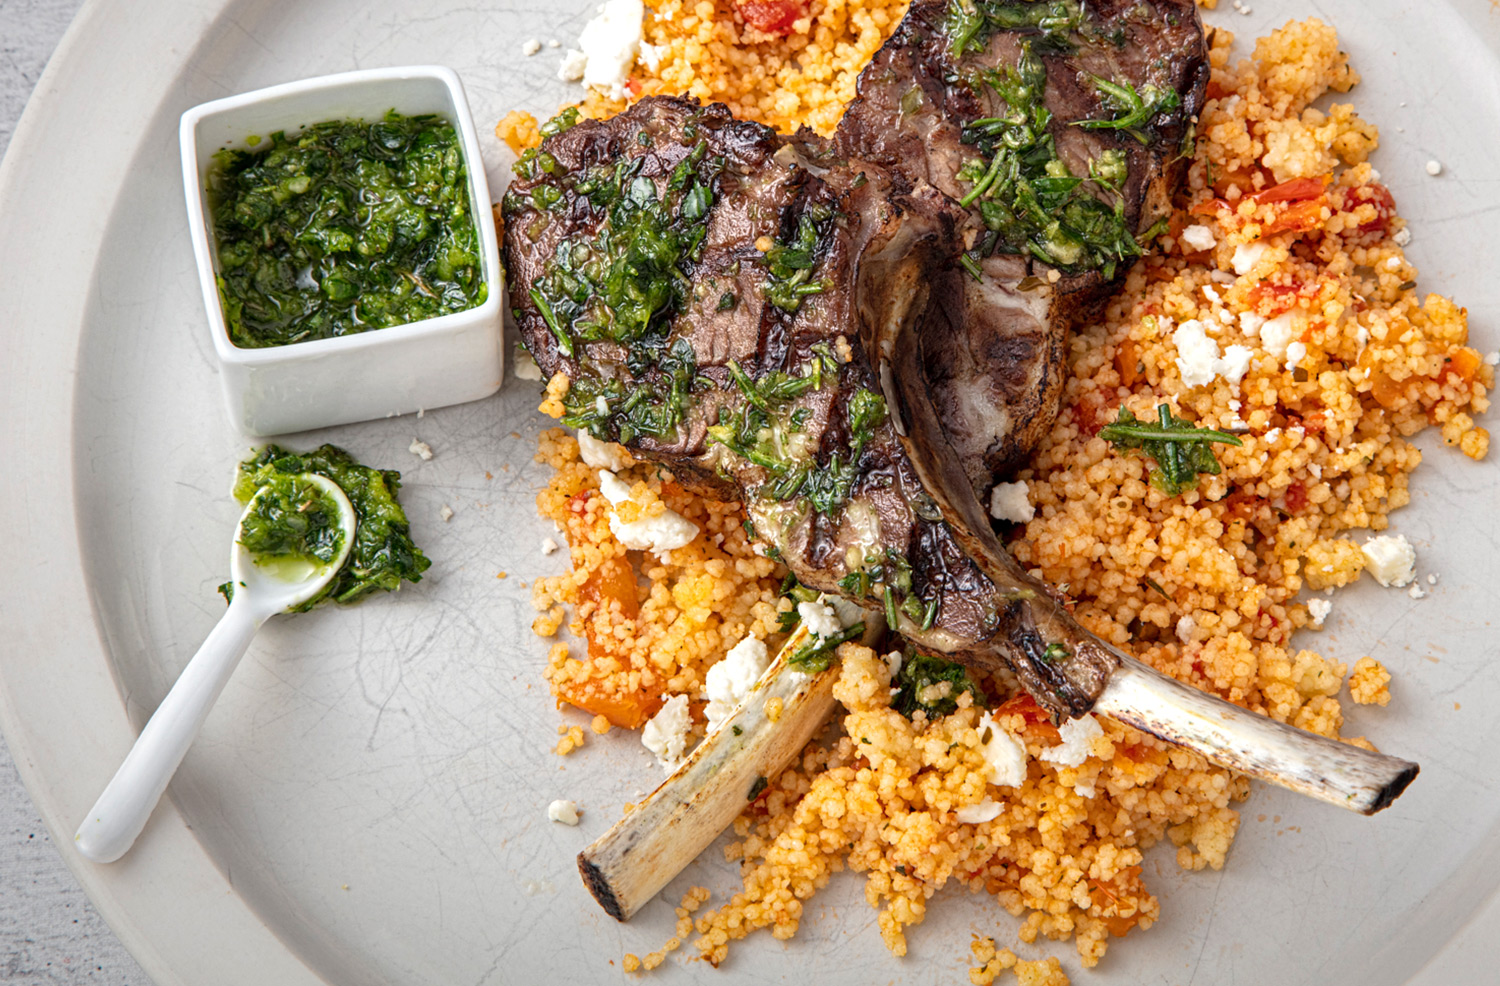 Grilled Herb Crusted Lam Chops with Couscous and Feta Cheese